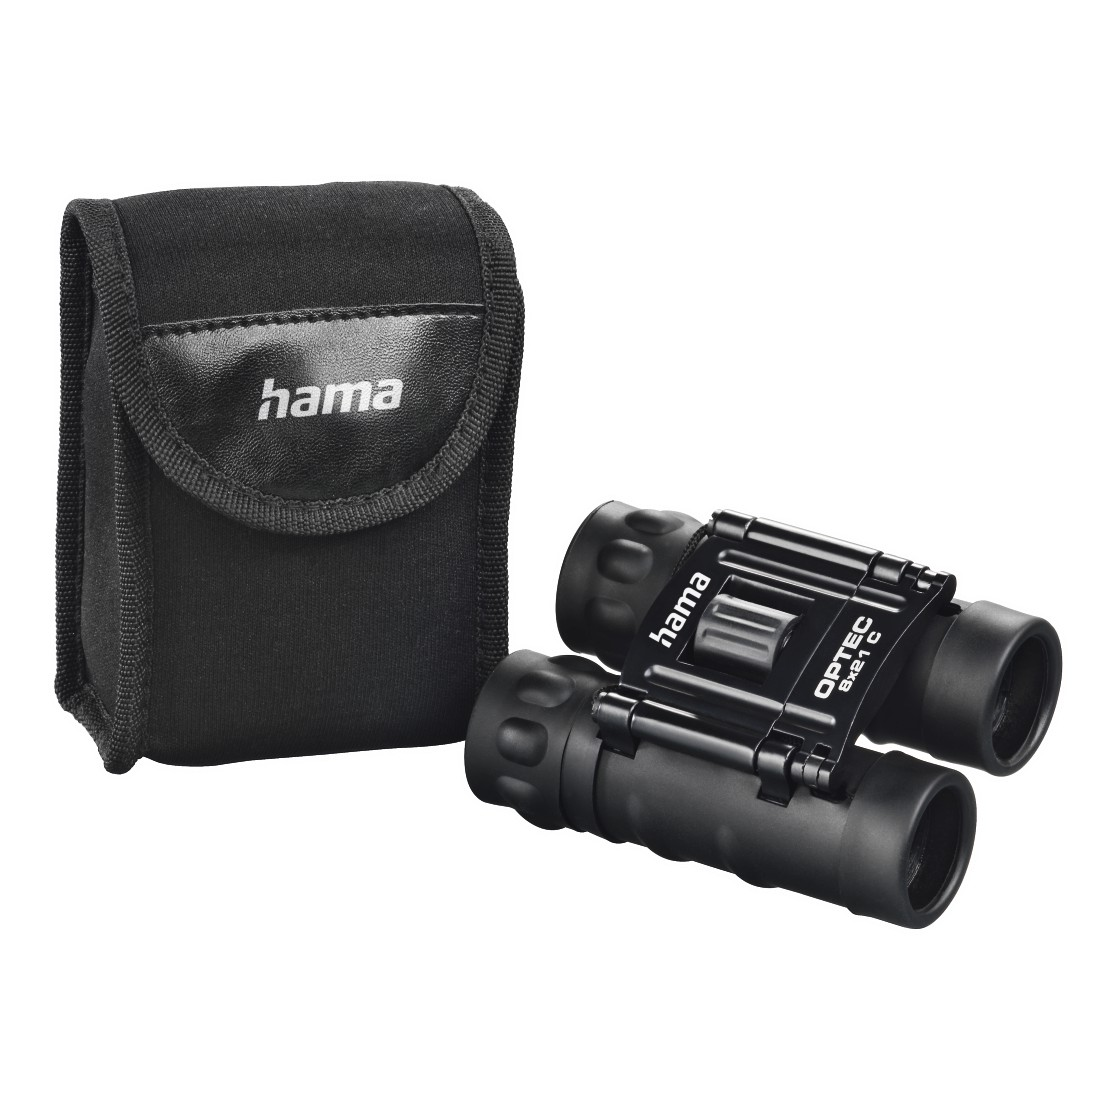 "abx2 High-Res Image 2 - Hama, ""Optec"" Binoculars, 8x21 Compact"